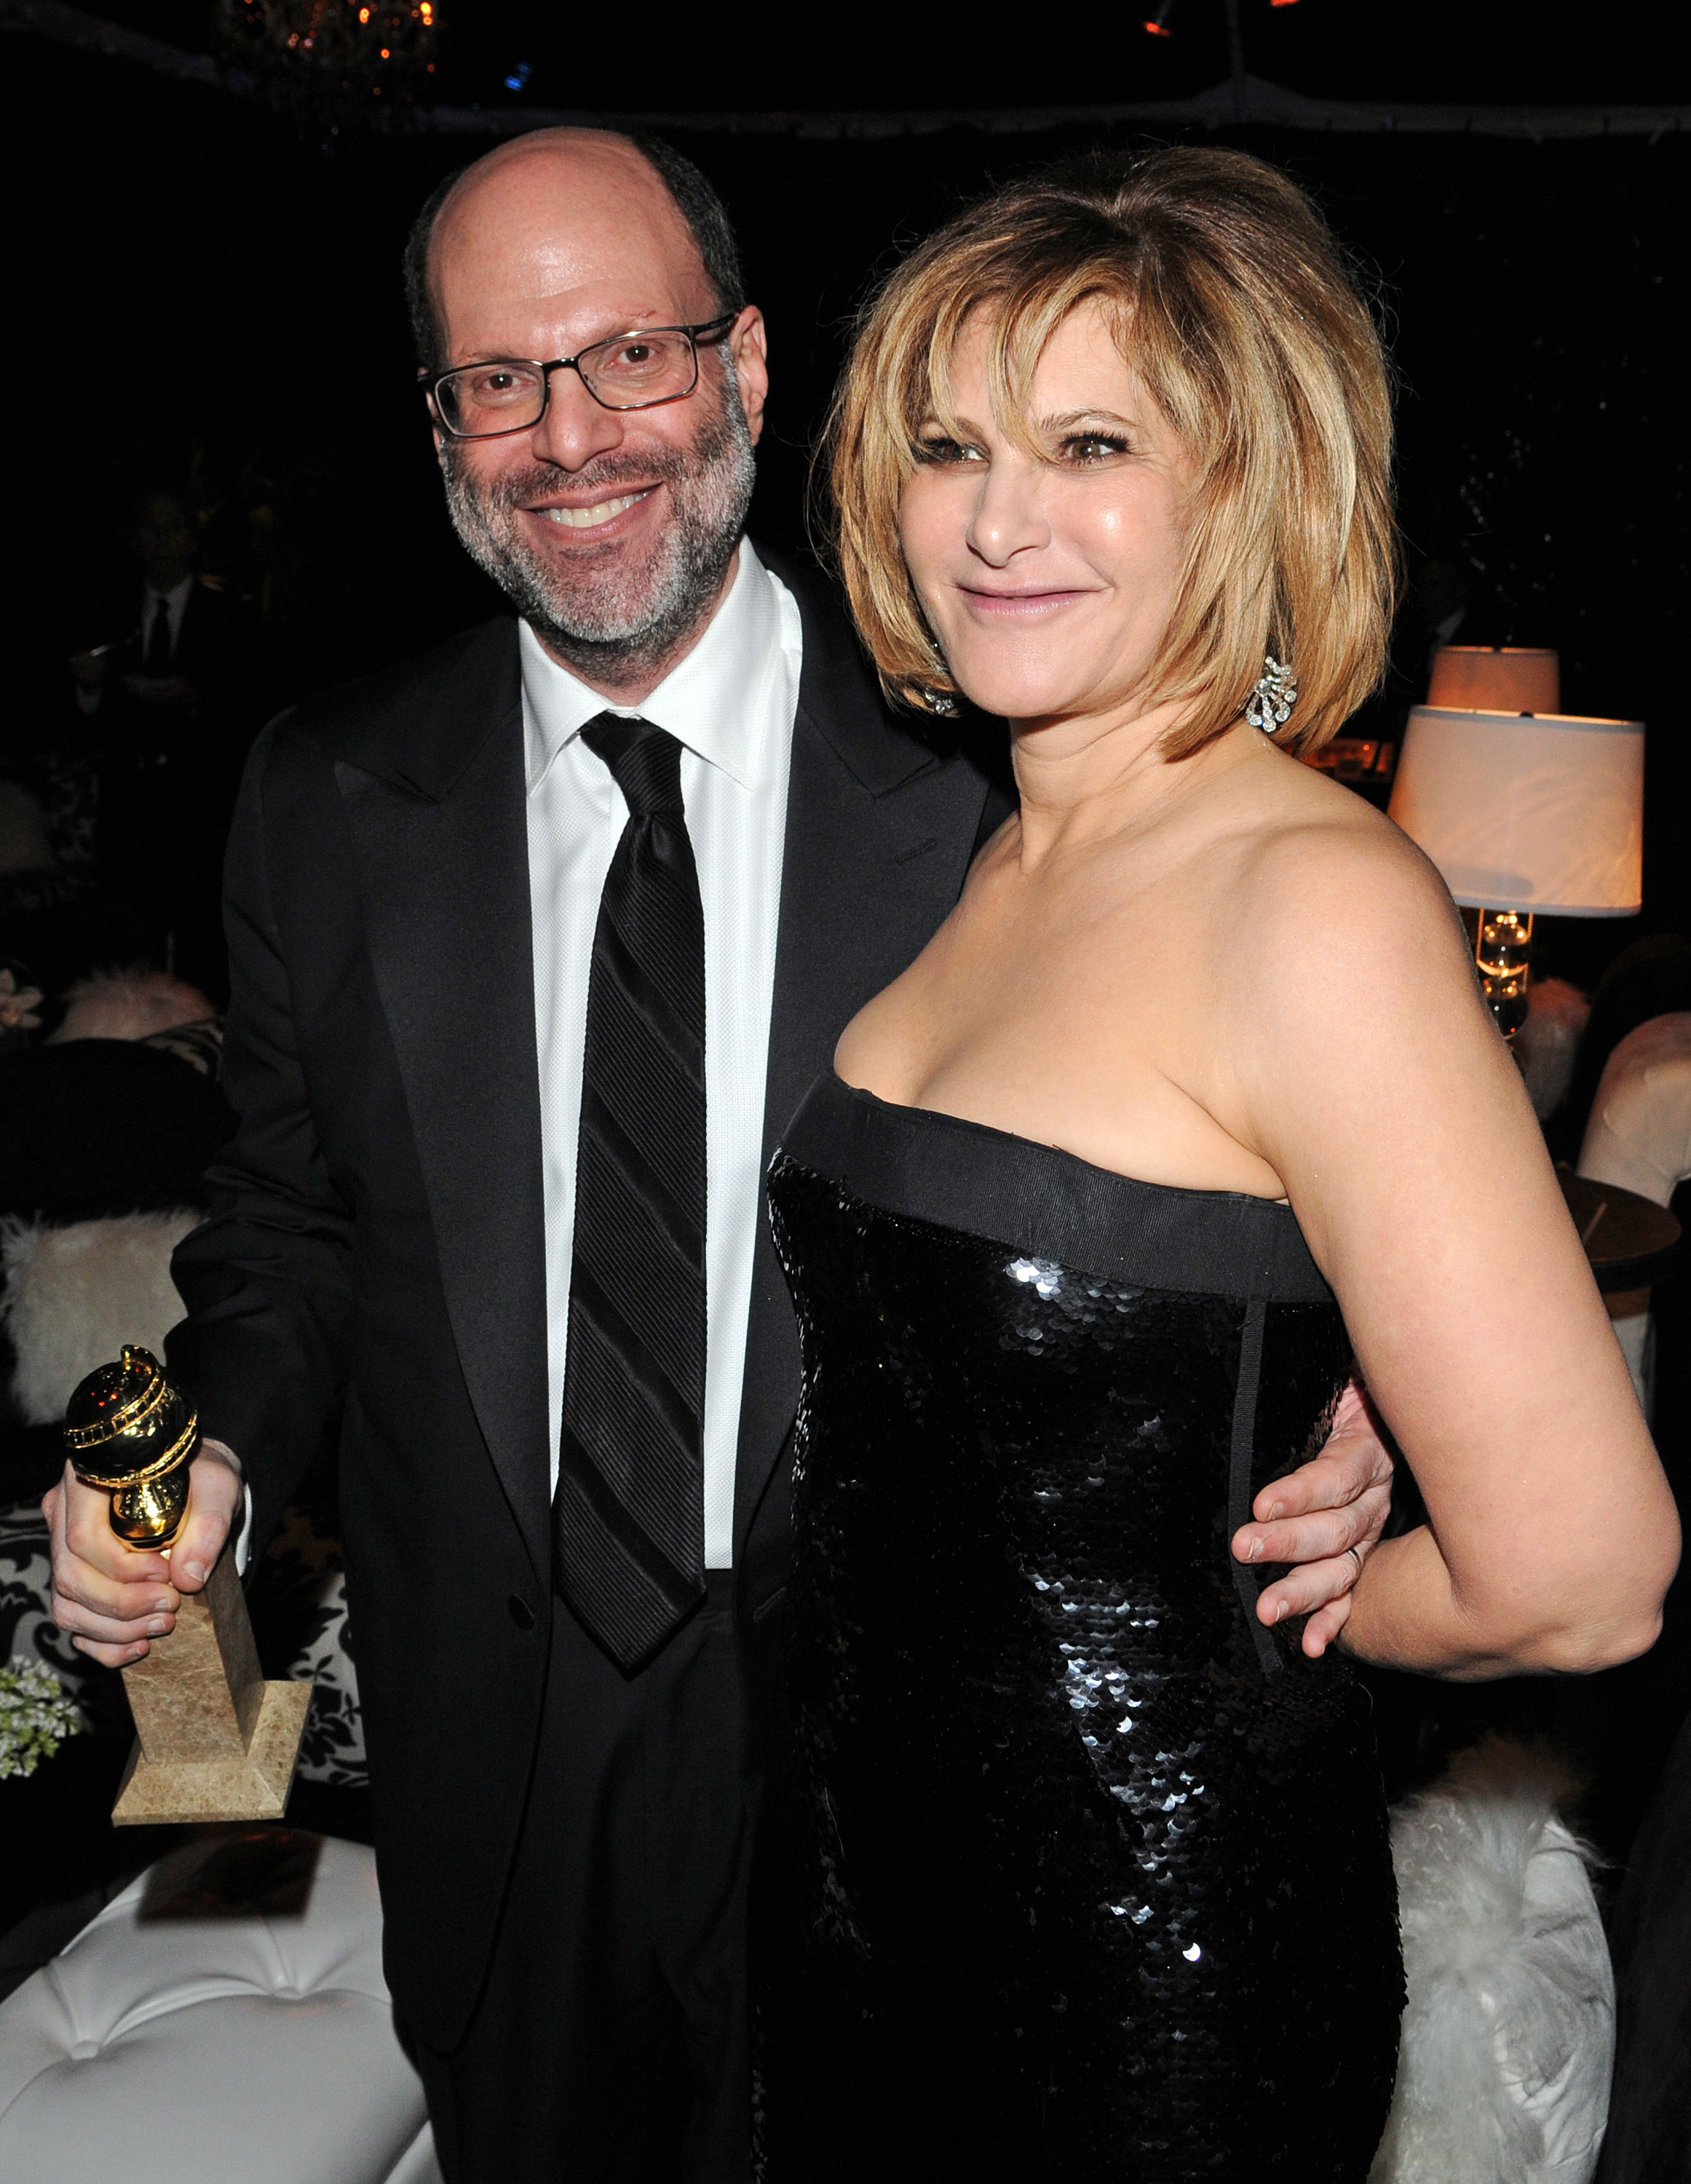 Scott Rudin and Amy Pascal attend the Sony Pictures Classic 68th Annual Golden Globe Awards Party held at The Beverly Hilton hotel on January 16, 2011 in Beverly Hills, California.